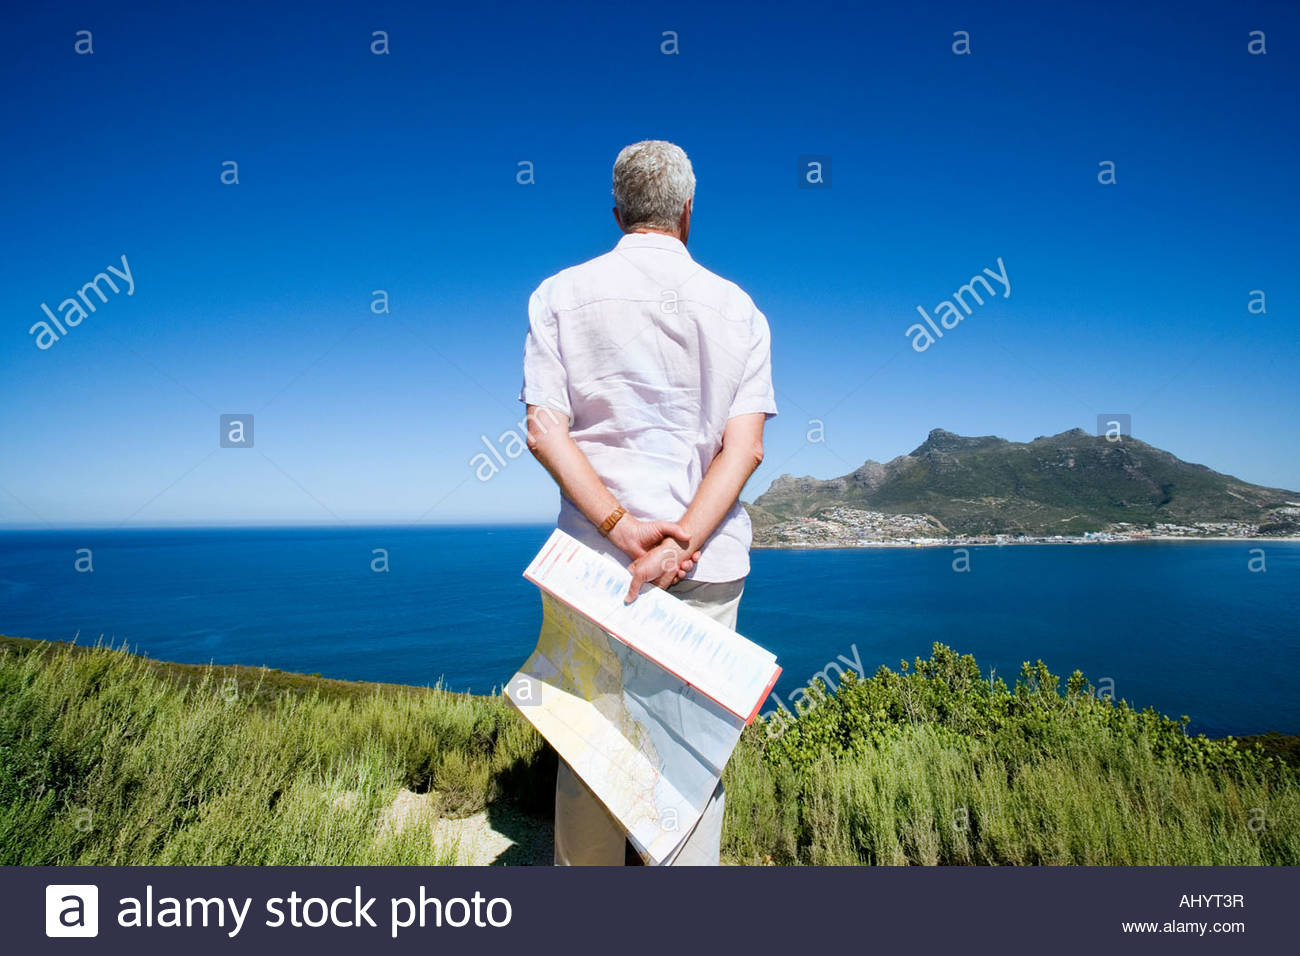 South Africa, Cape Town, senior man holding map, looking out to sea, rear view - Stock Image